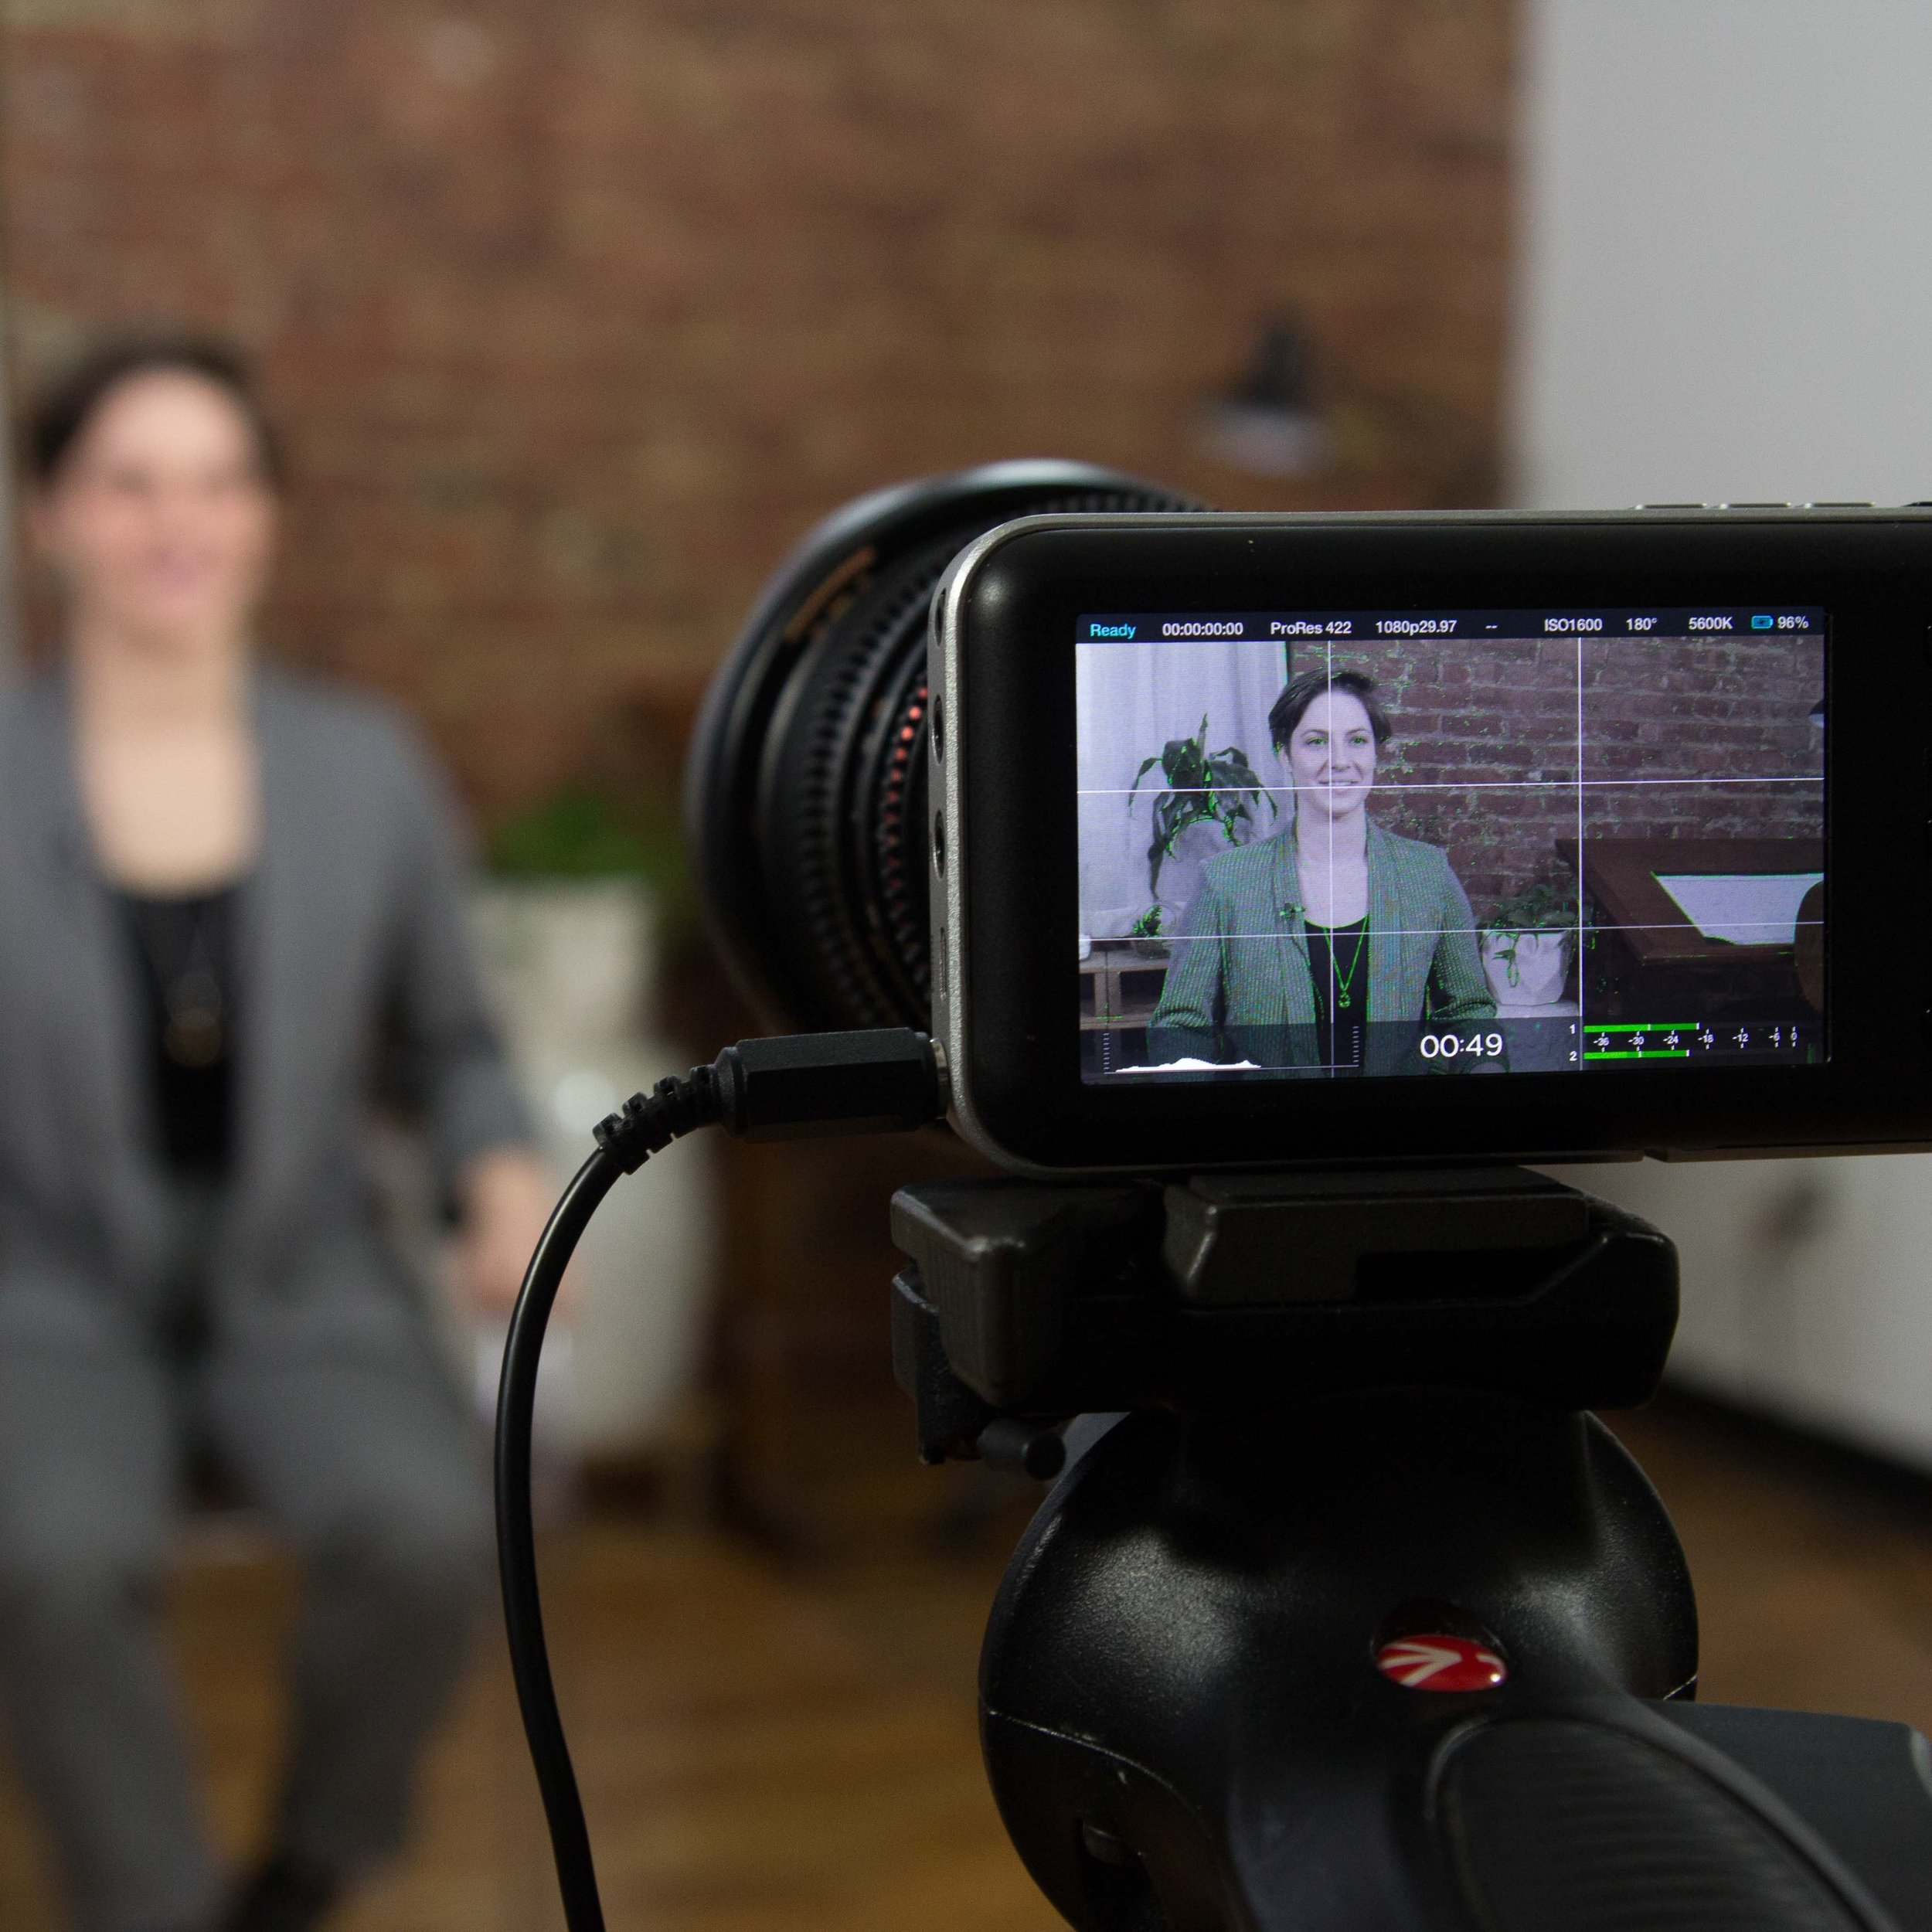 Filming and Capture - Tips and tricks that will make your video shoot go smoothly and ensure your footage comes out great.